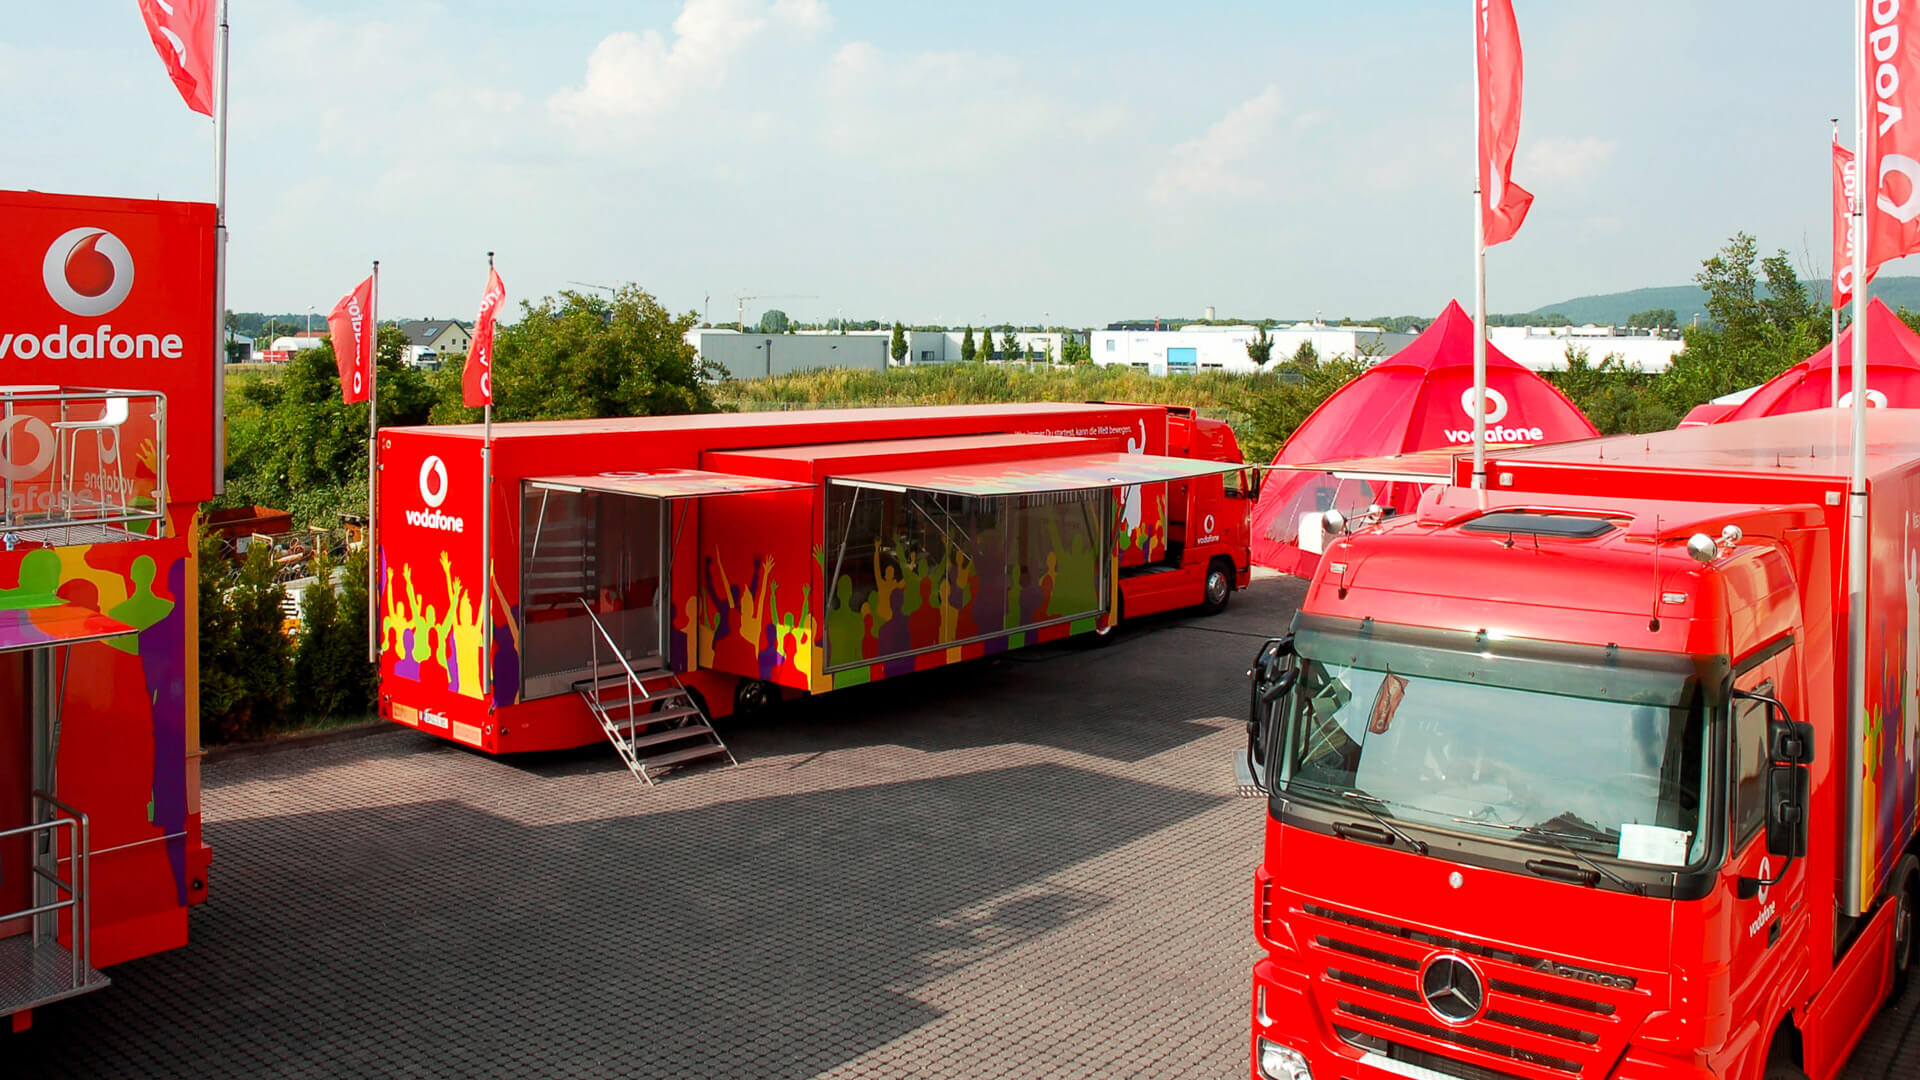 Promotion Flotte mobiles-Marketing mobile-Geschäftsstelle Infomobil Truck Roadshow Showtruck